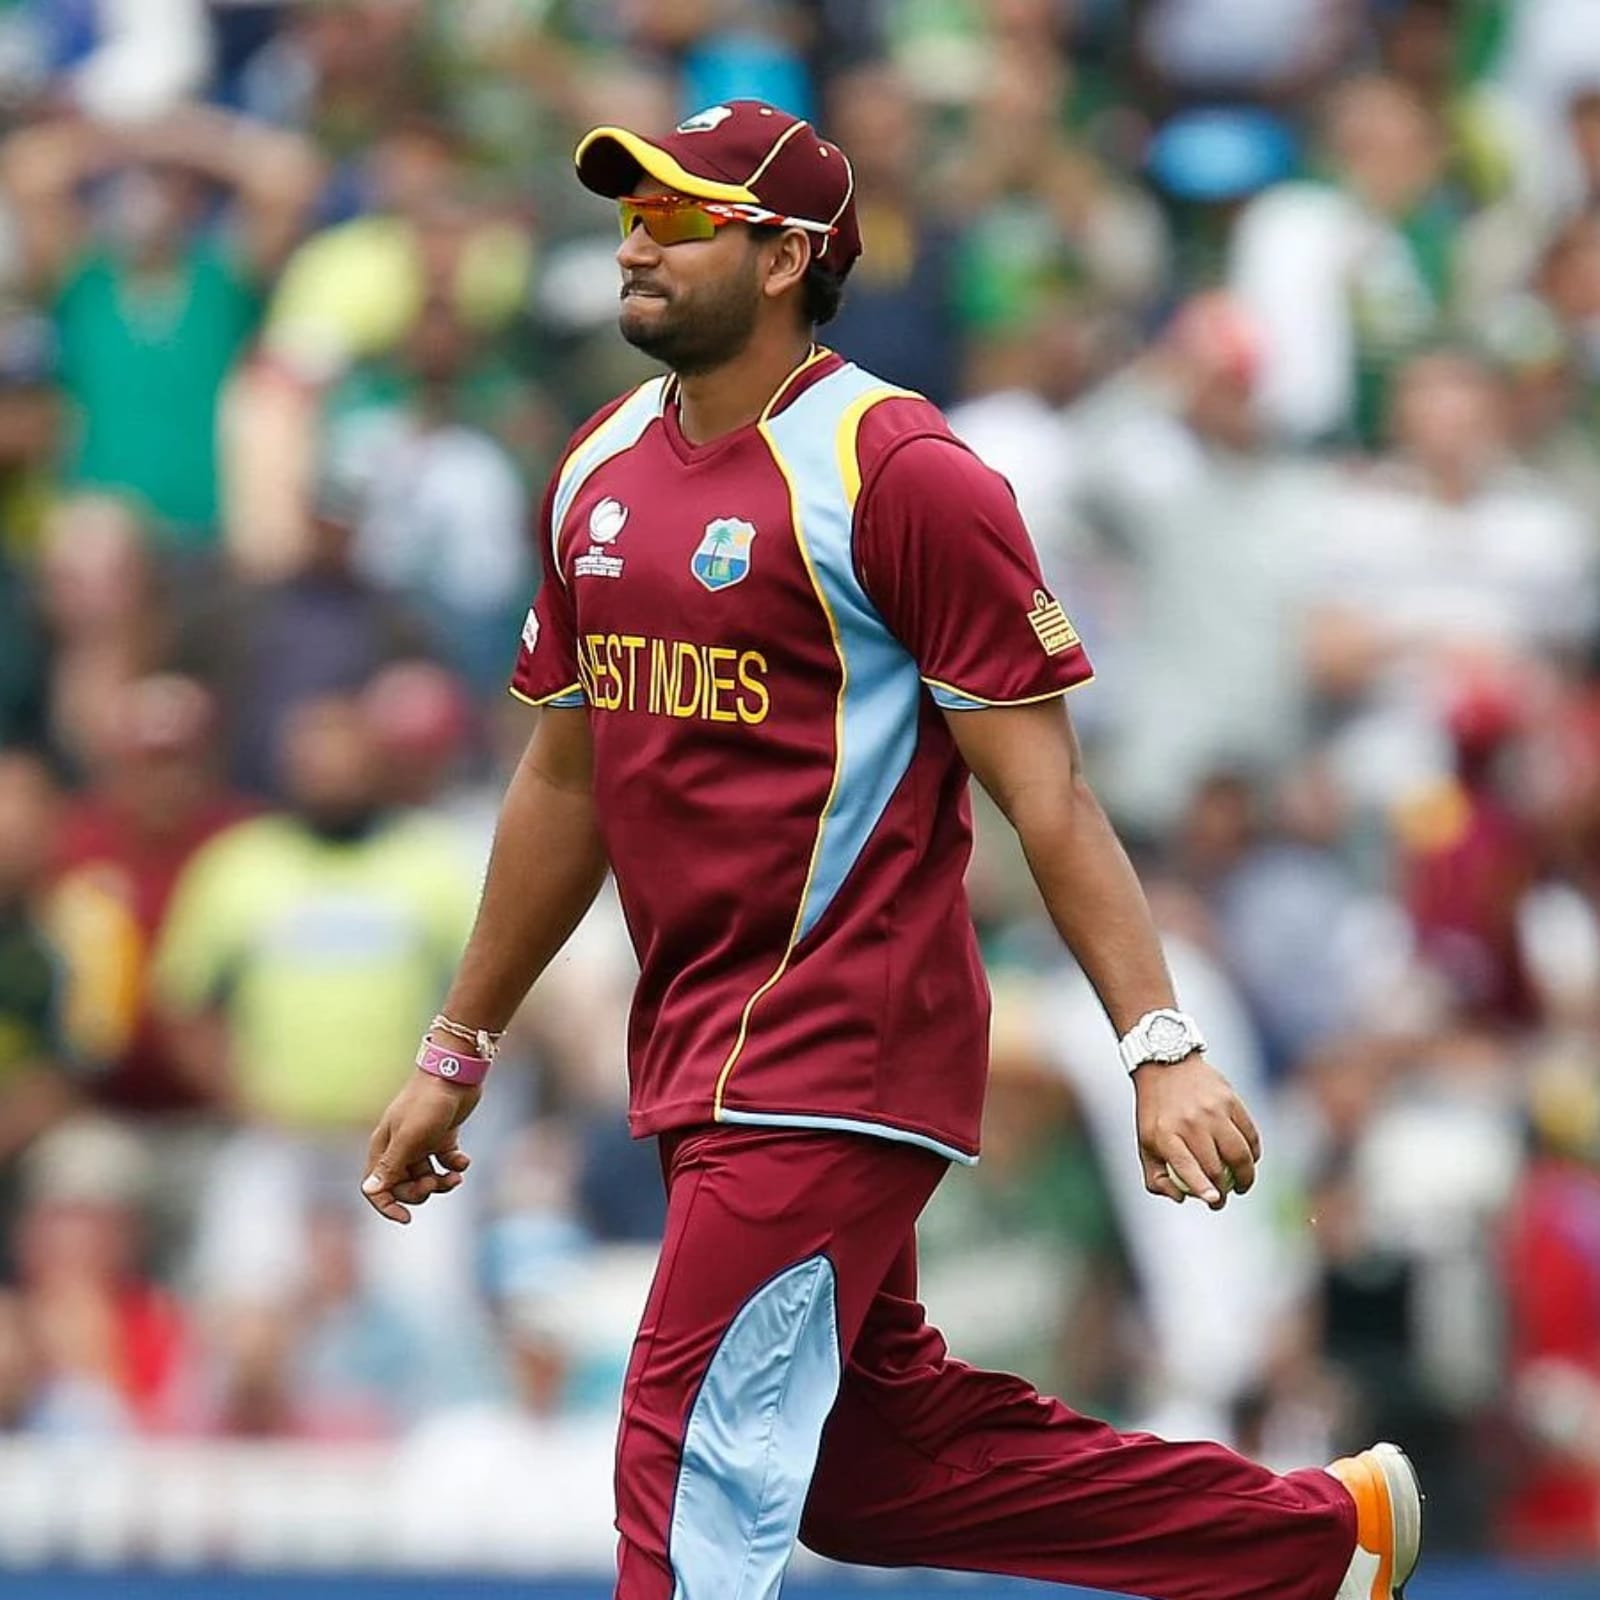 T20 World Cup 2021: Ravi Rampaul Makes his Way, But Sunil Narine Left Out  of West Indies Squad